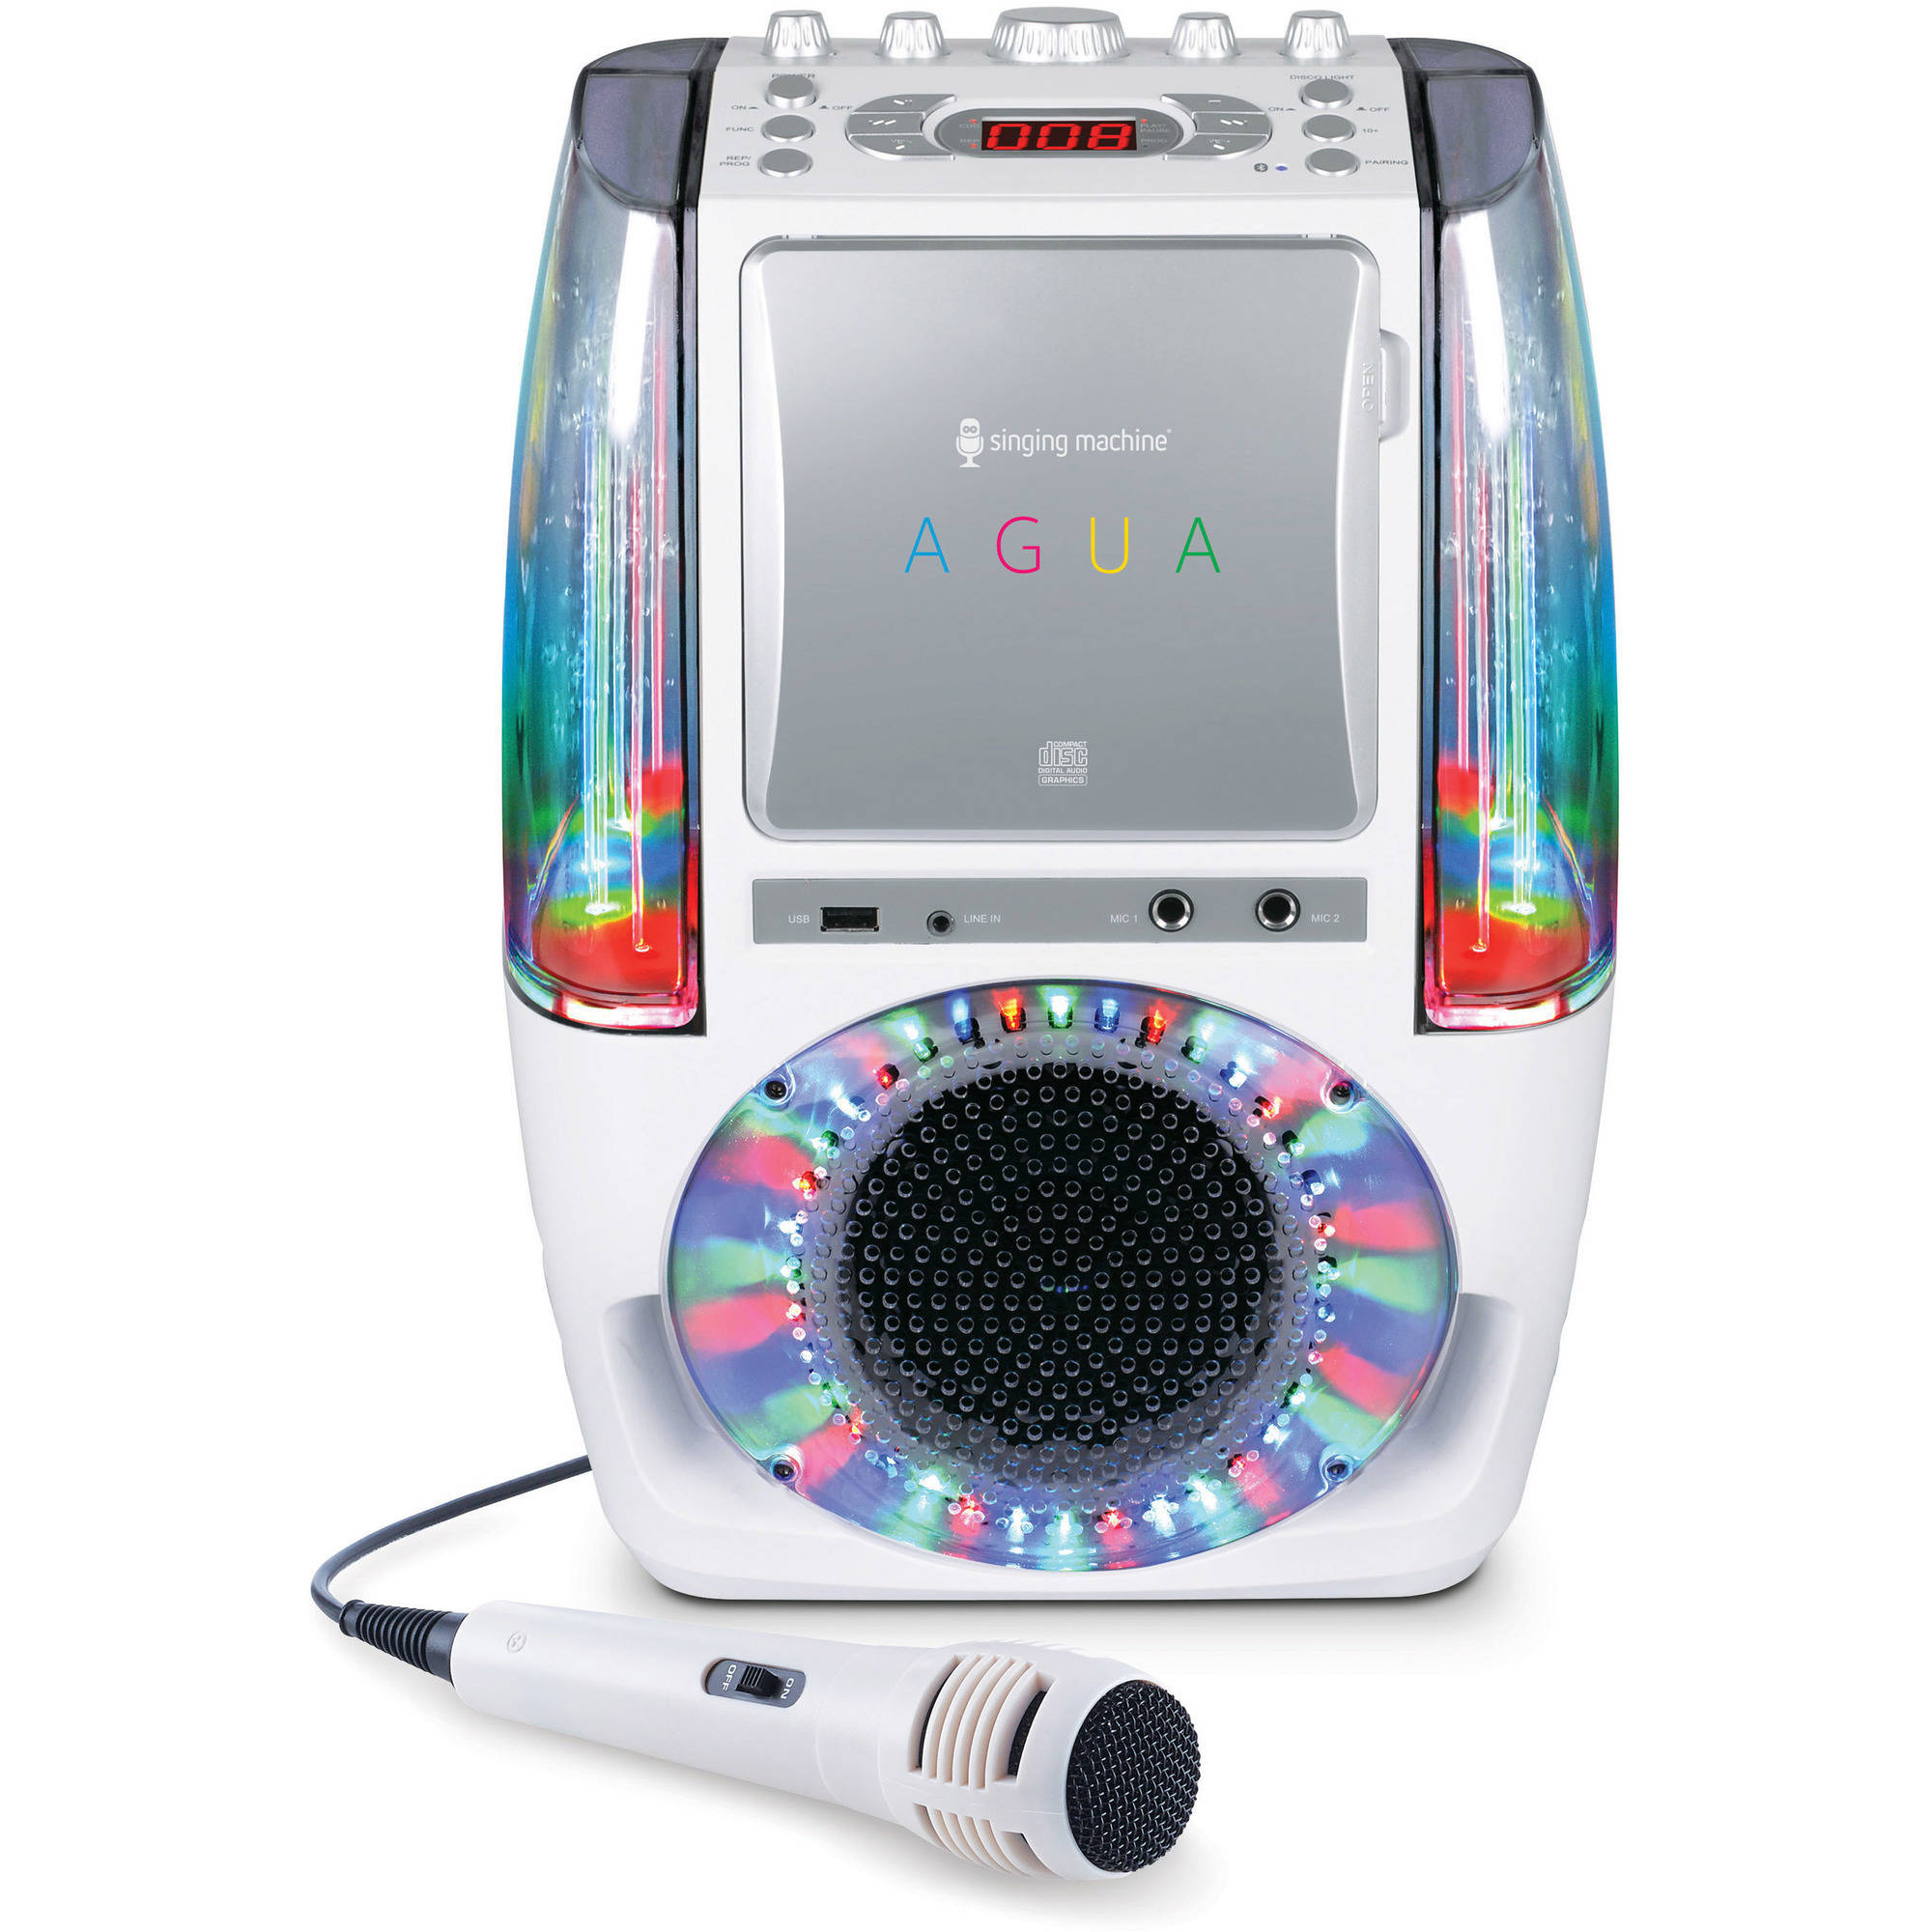 Singing Machine AGUA Dancing Water Fountain Karaoke System with LED Disco Lights and Wired Microphone, White